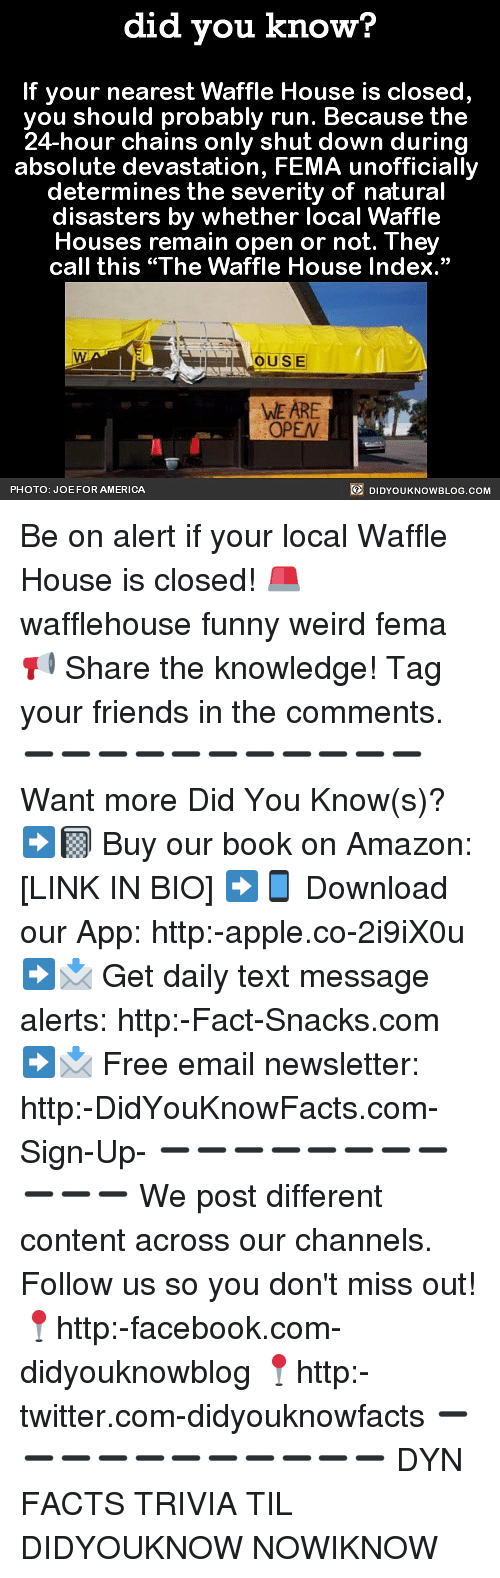 """fema: did you know?  If your nearest Waffle House is closed  you should probably run. Because the  24-hour chains only shut down during  absolute devastation, FEMA unofficially  determines the severity of natural  disasters by whether local Waffle  Houses remain open or not. They  call this """"The Waffle House Index.""""  OUSE  WE ARE  OPEN  PHOTO: JOE FOR AMERICA  DIDYOUKNOWBLOG.COM Be on alert if your local Waffle House is closed! 🚨 wafflehouse funny weird fema 📢 Share the knowledge! Tag your friends in the comments. ➖➖➖➖➖➖➖➖➖➖➖ Want more Did You Know(s)? ➡📓 Buy our book on Amazon: [LINK IN BIO] ➡📱 Download our App: http:-apple.co-2i9iX0u ➡📩 Get daily text message alerts: http:-Fact-Snacks.com ➡📩 Free email newsletter: http:-DidYouKnowFacts.com-Sign-Up- ➖➖➖➖➖➖➖➖➖➖➖ We post different content across our channels. Follow us so you don't miss out! 📍http:-facebook.com-didyouknowblog 📍http:-twitter.com-didyouknowfacts ➖➖➖➖➖➖➖➖➖➖➖ DYN FACTS TRIVIA TIL DIDYOUKNOW NOWIKNOW"""